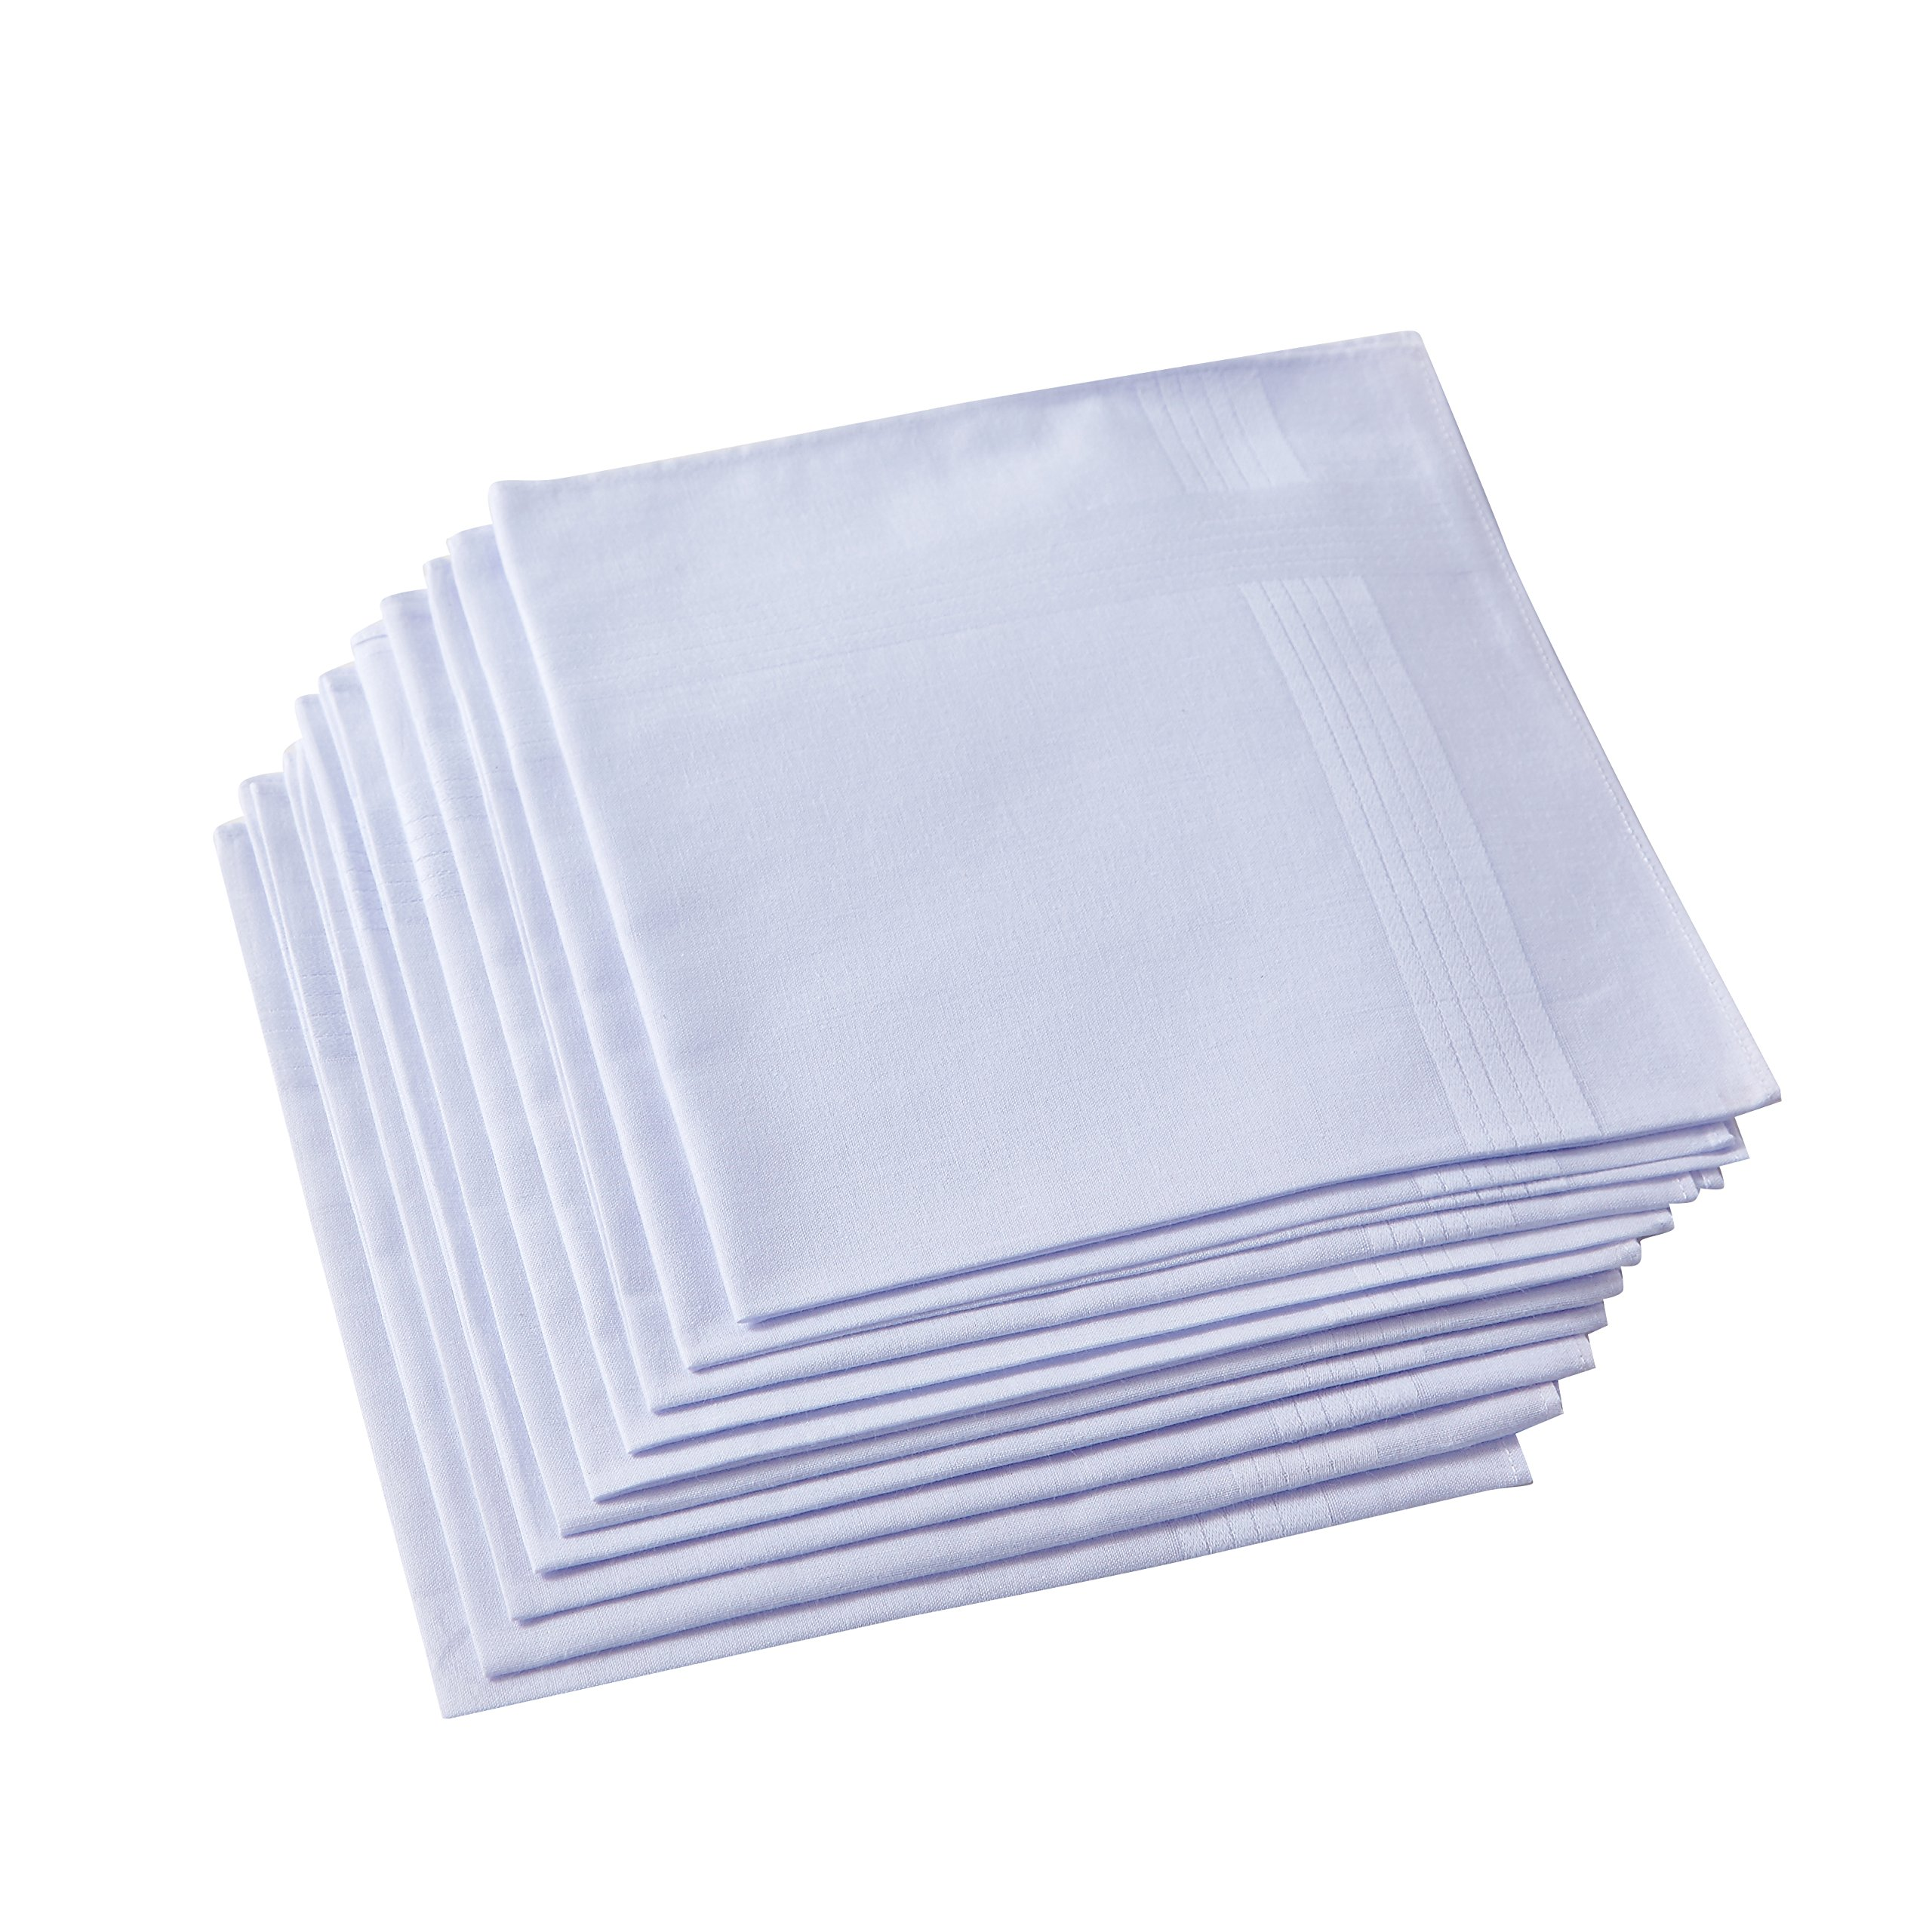 Men's White Handkerchiefs,100% Cotton,Pack of 12